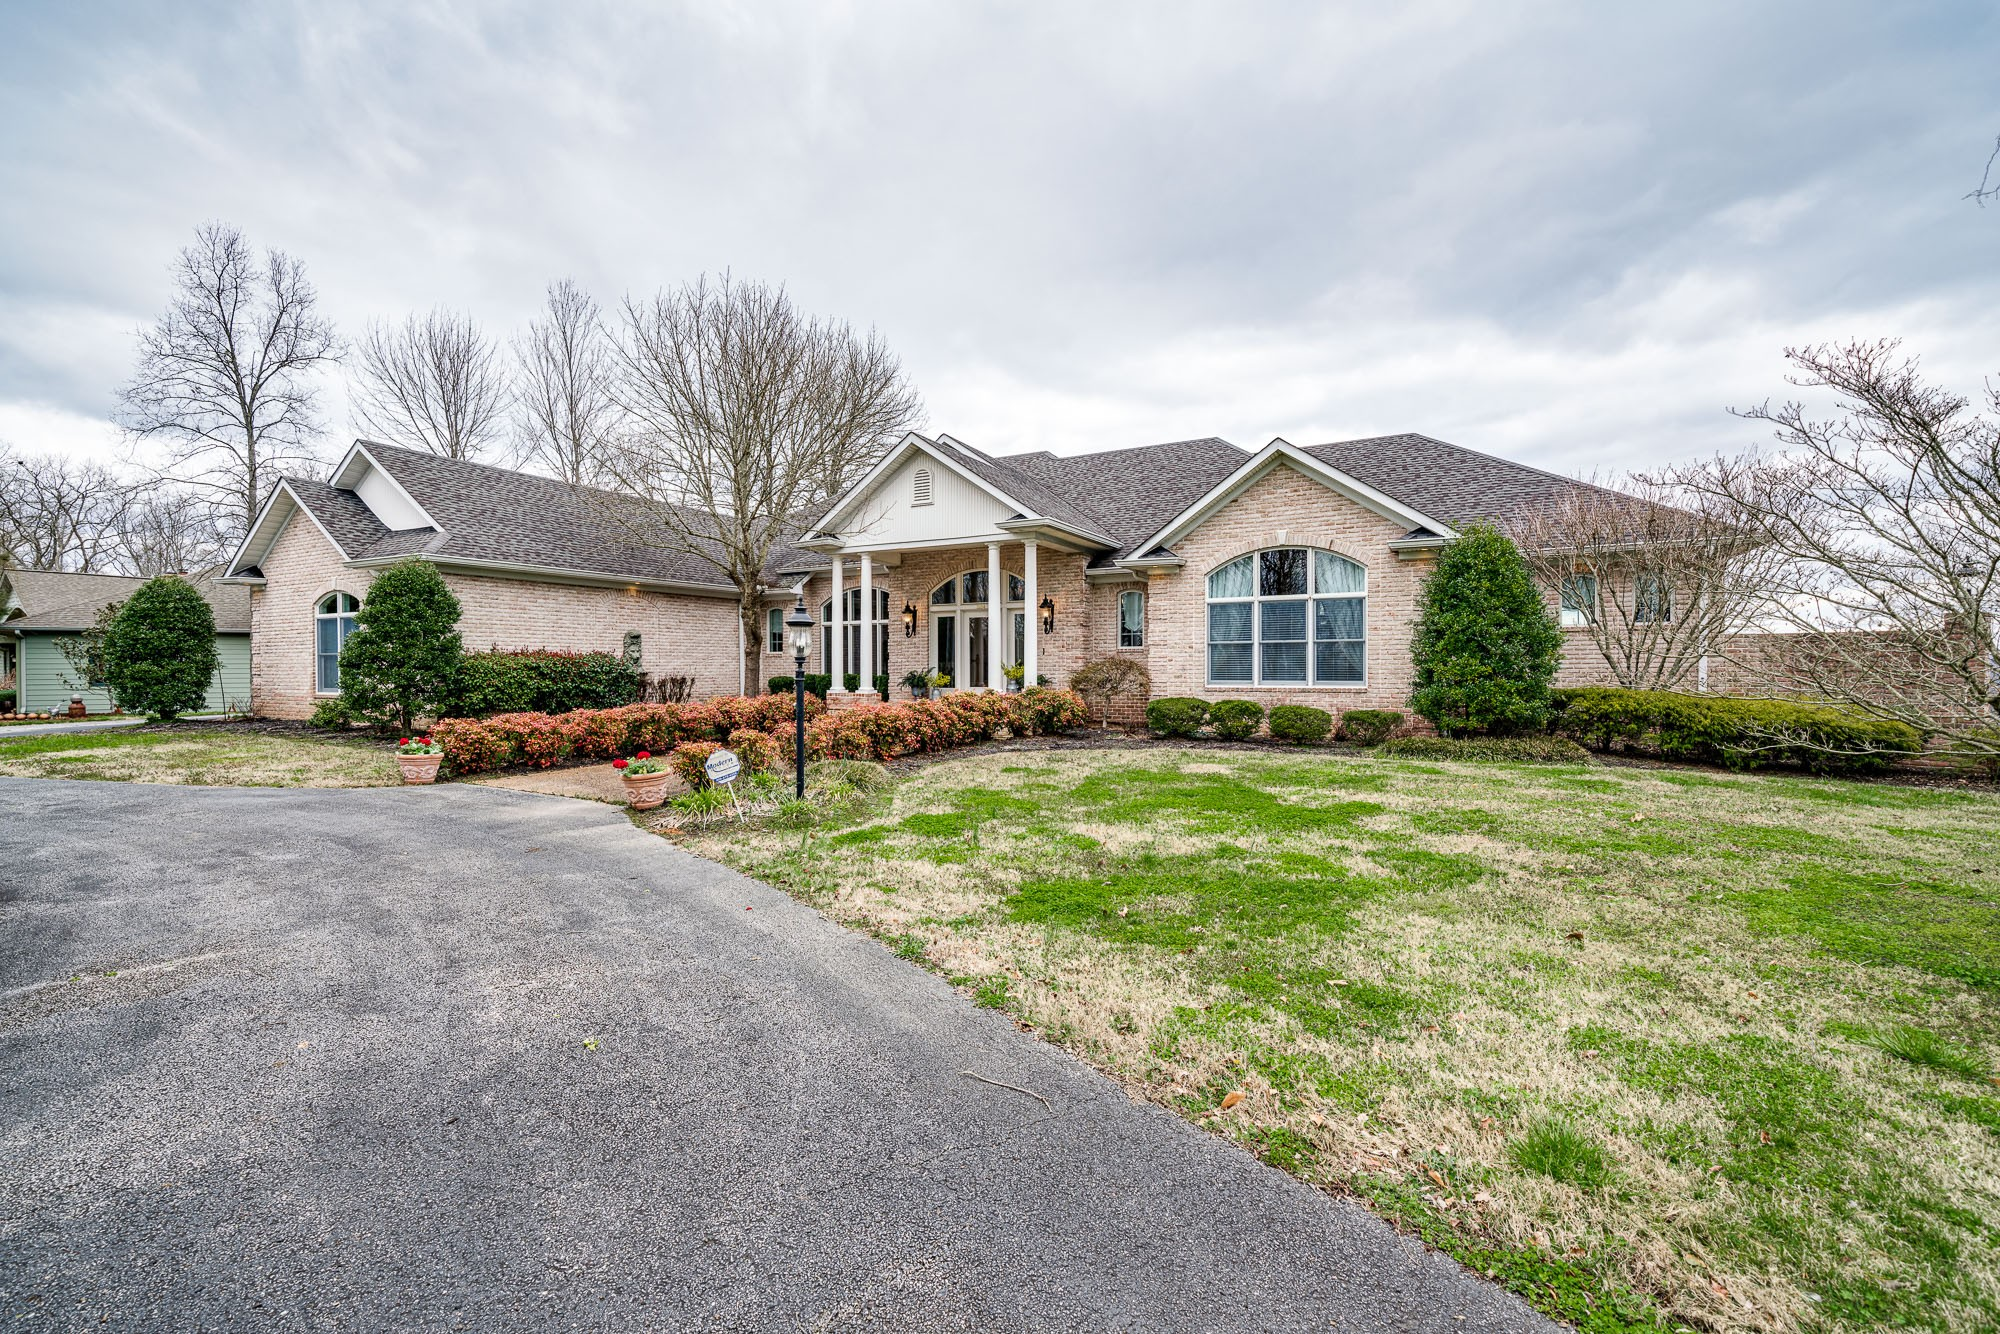 1954 Old Hwy 53, E Property Photo - Celina, TN real estate listing